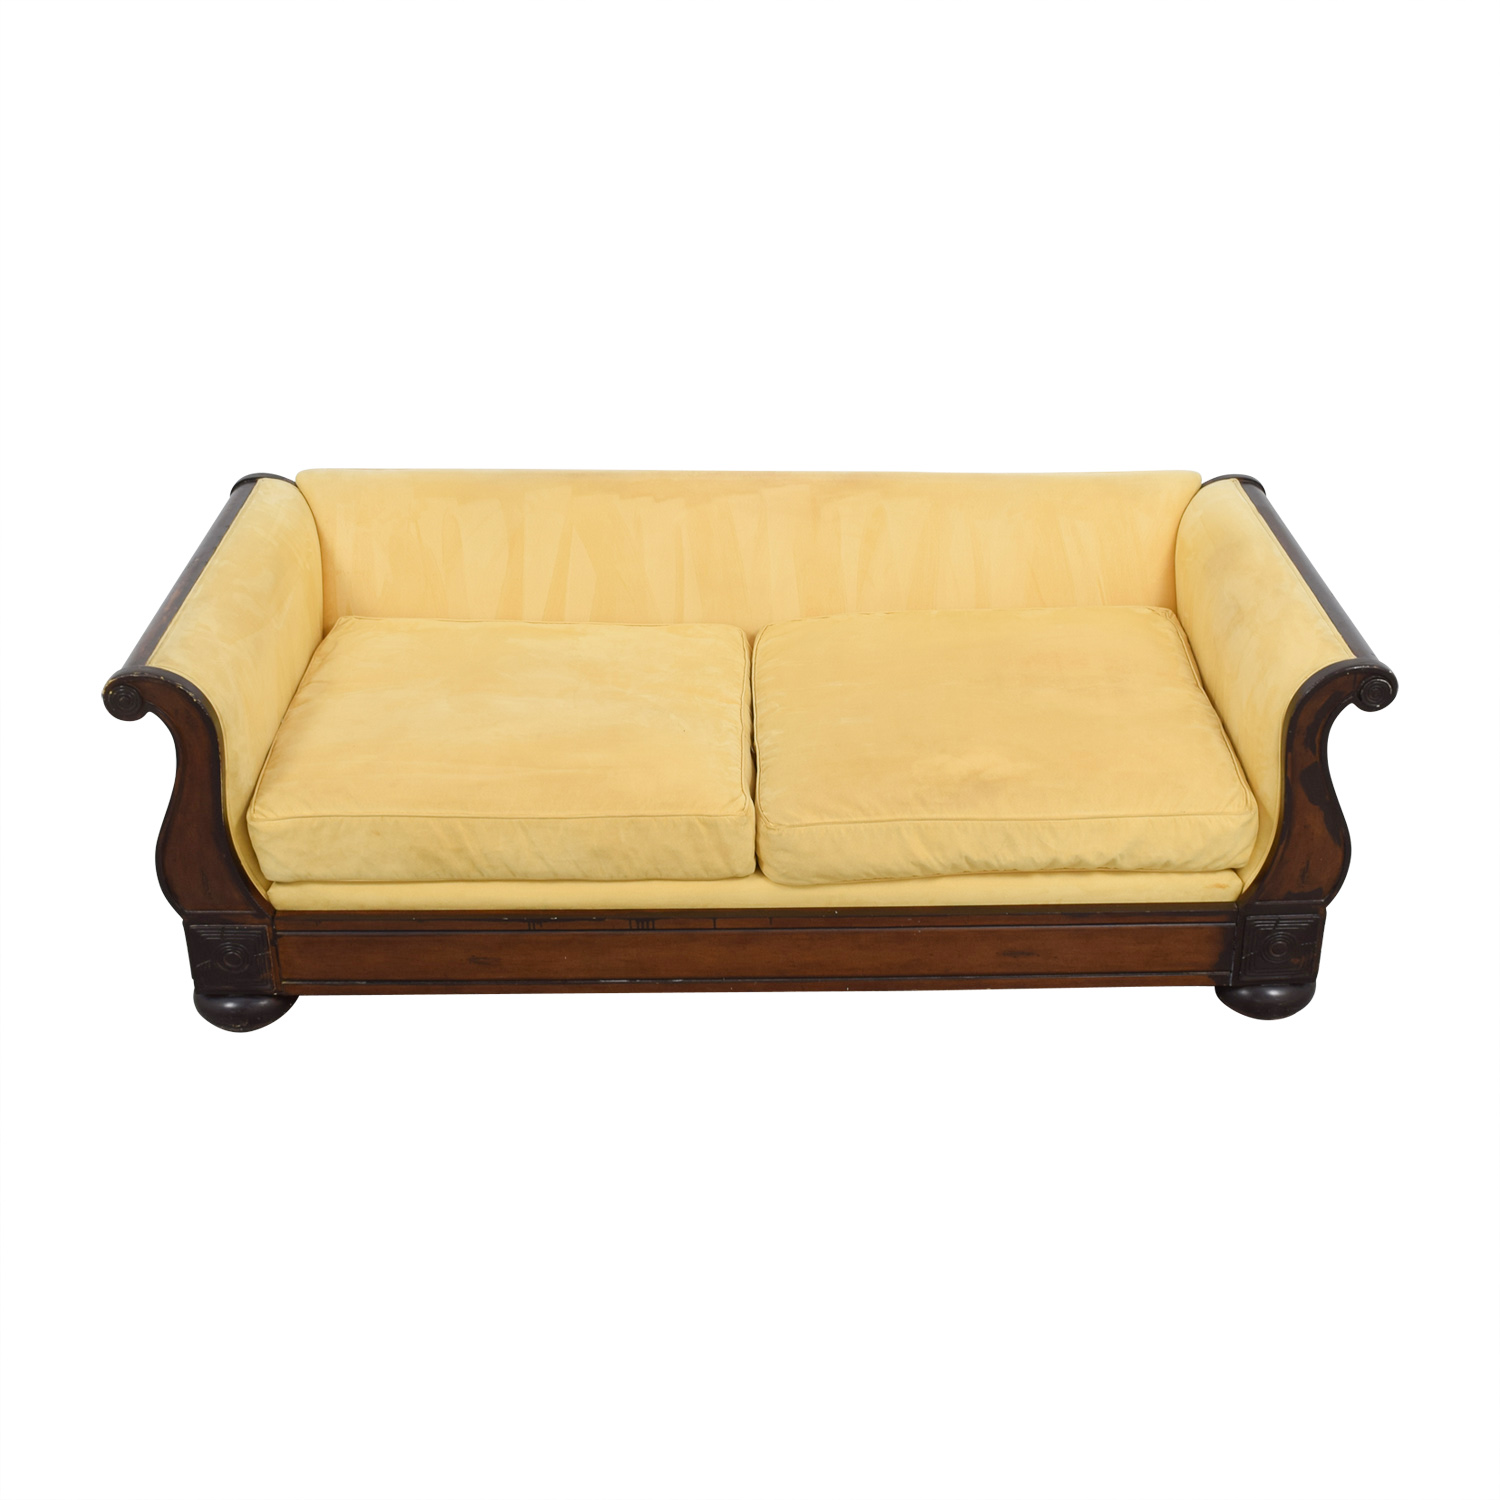 crate and barrel sofa cushion replacement sofas on finance 90 off yellow two